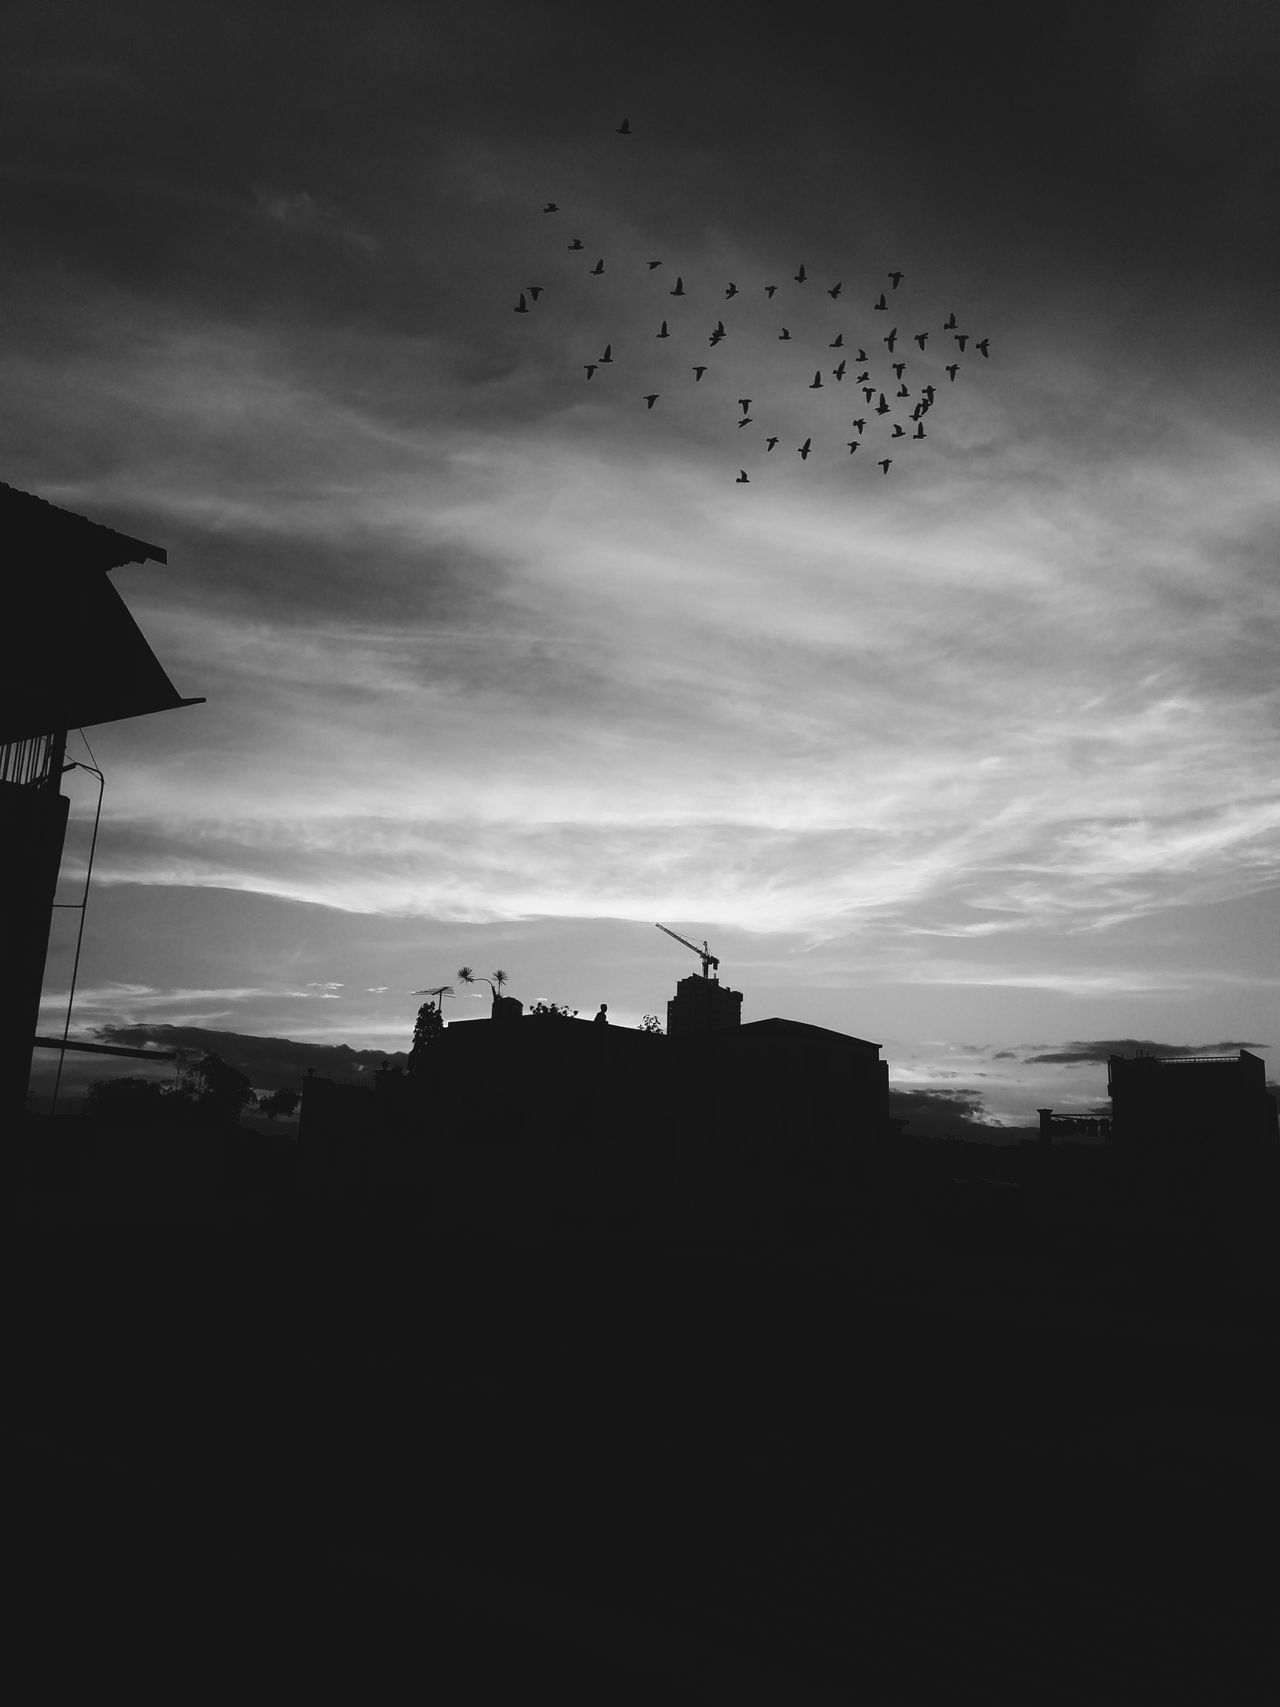 I see the world in balck and white. Silhouette Cloud - Sky Sunset Flying Sky Bird No People Flock Of Birds Outdoors Animal Themes Nature Day